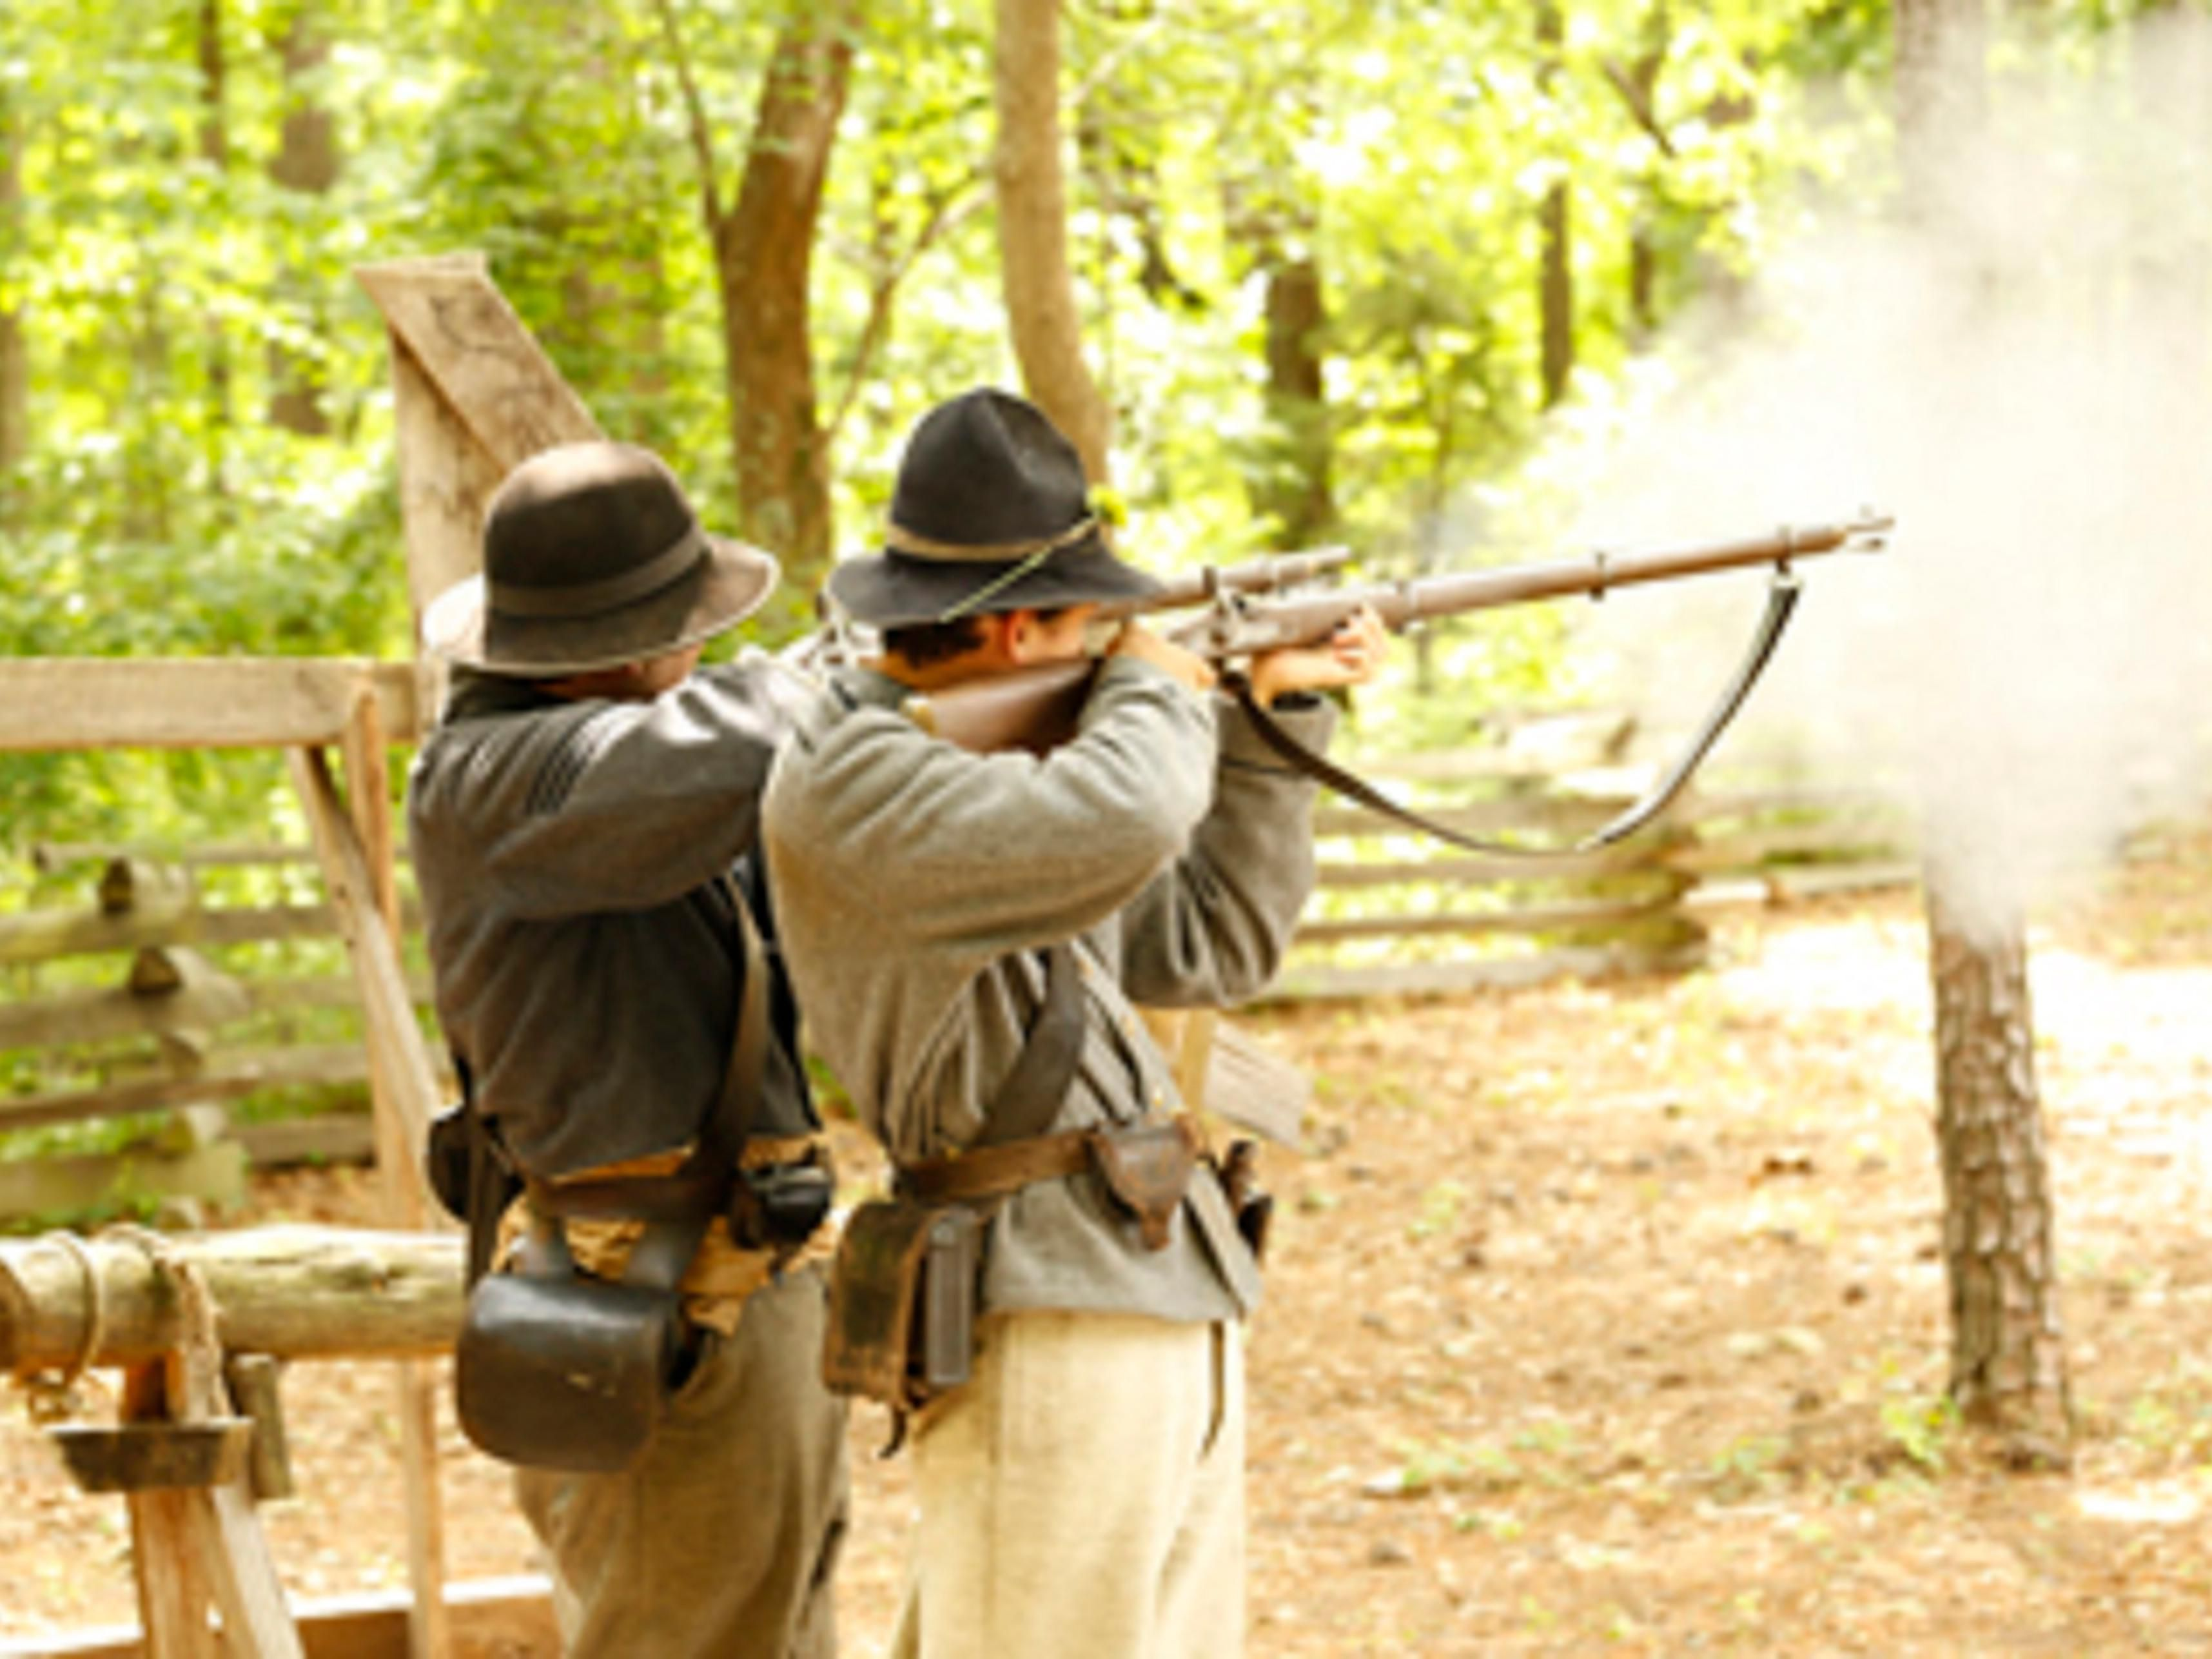 Enjoy Pamplin Park's Historical Rifle Demonstration